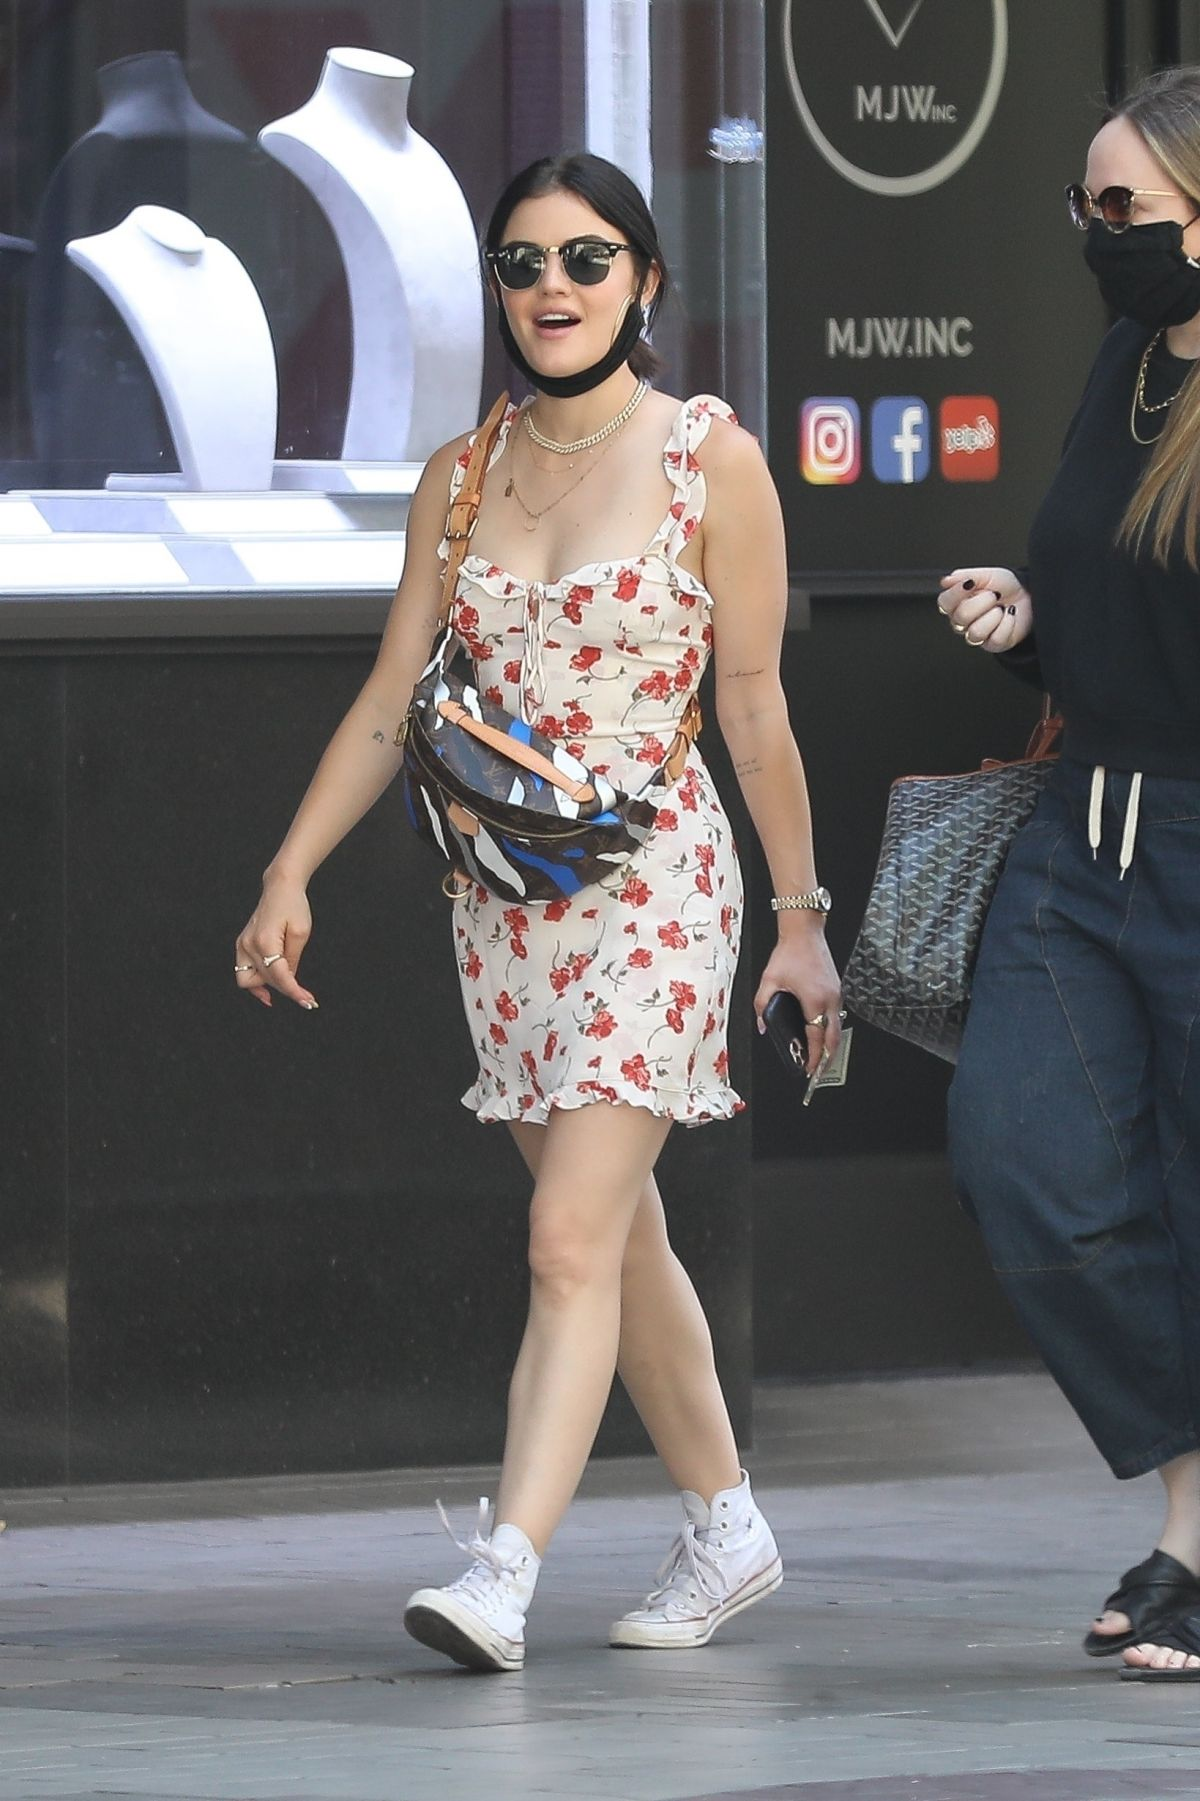 lucy-hale-wearing-reformatiion-dress-los-angeles-june-10-2020